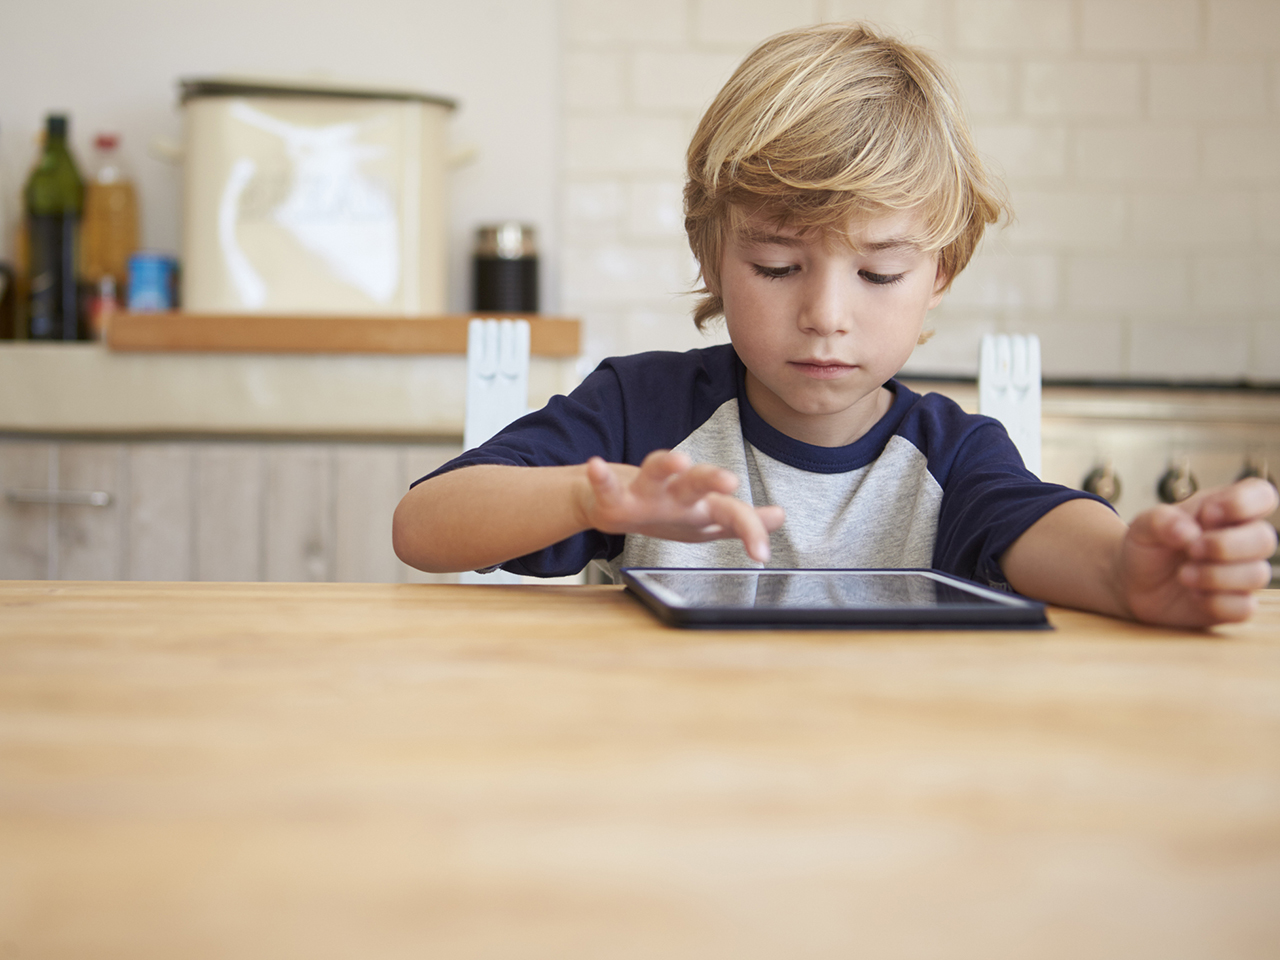 Young boy using tablet computer at kitchen table